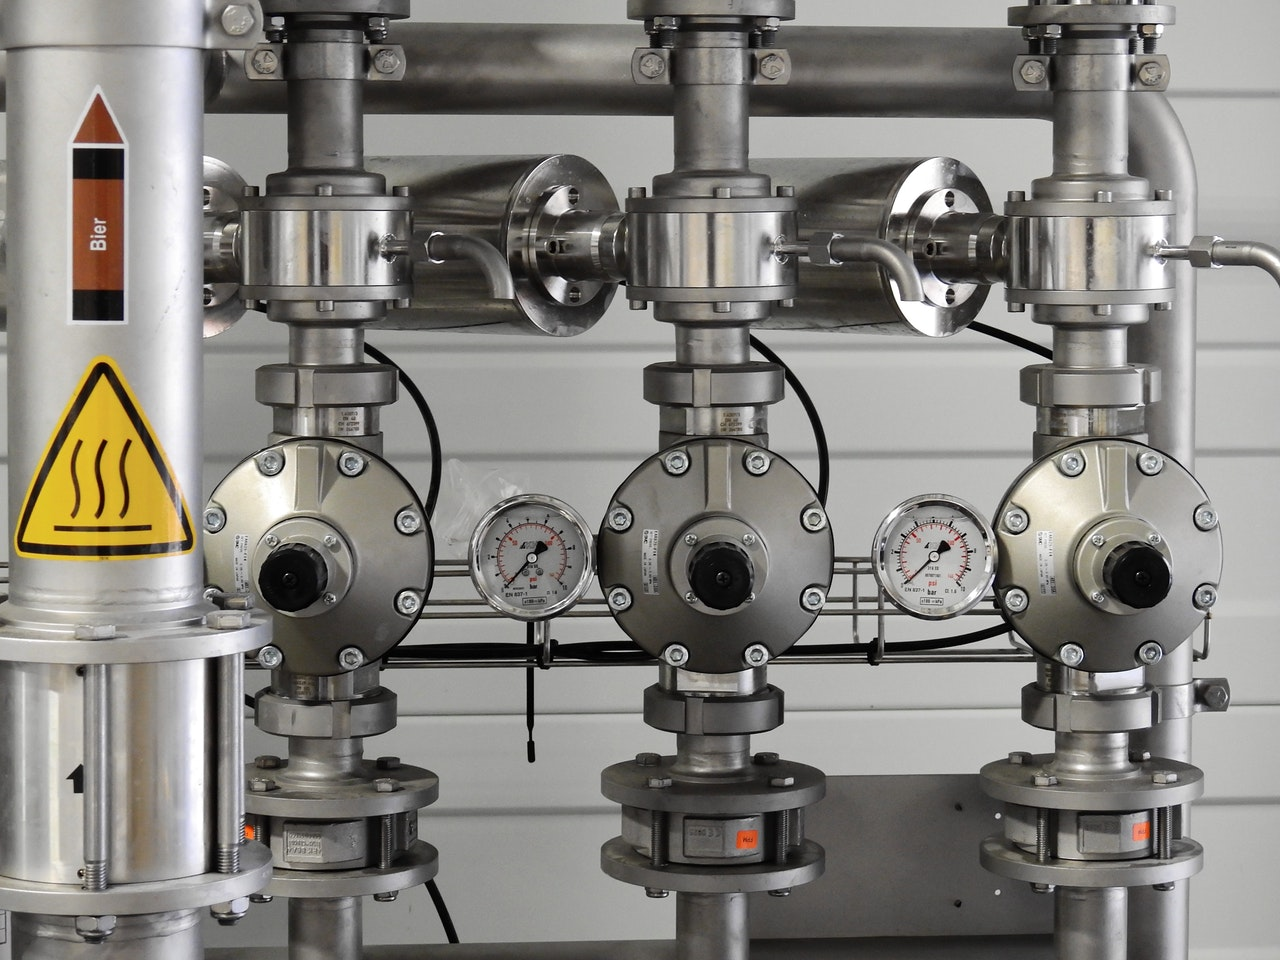 Thermal Flow Meters: Working Principle, Pros and Cons, and Design